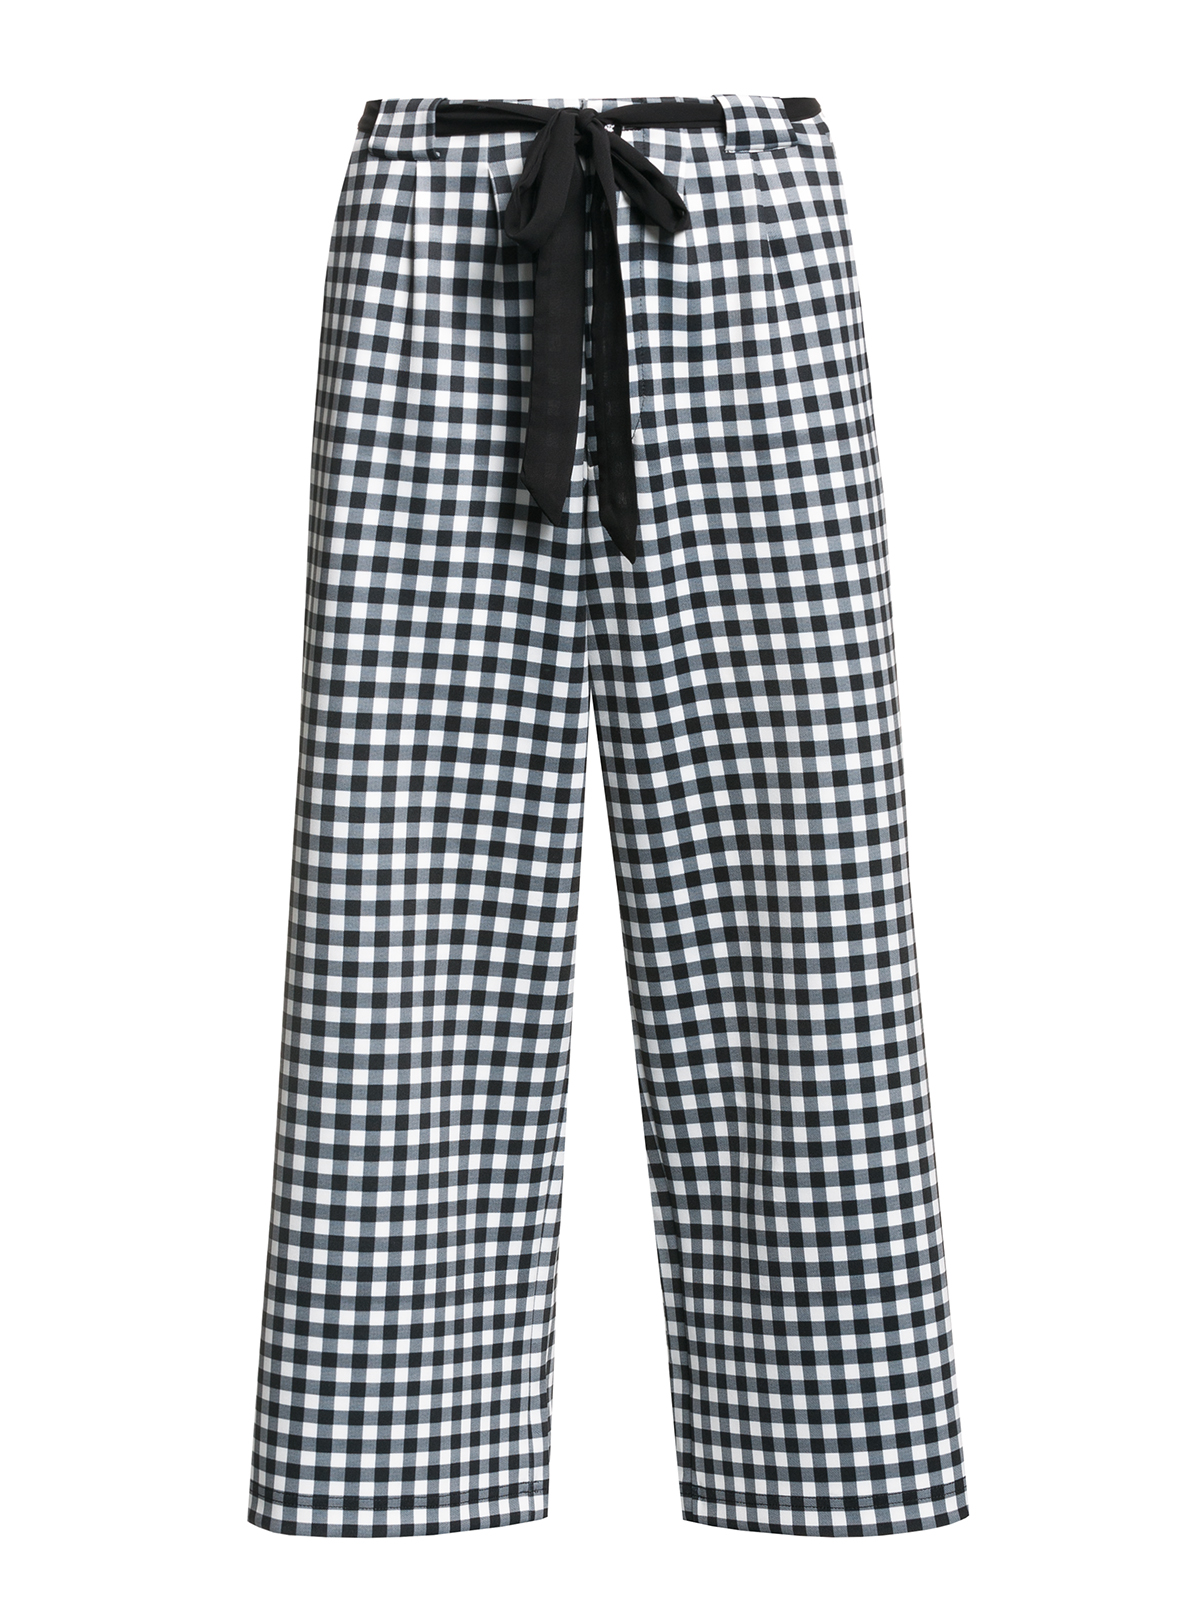 Hosen - Pussy Deluxe Plaid Cherries Damen Culotte – Größe XXL  - Onlineshop NAPO Shop